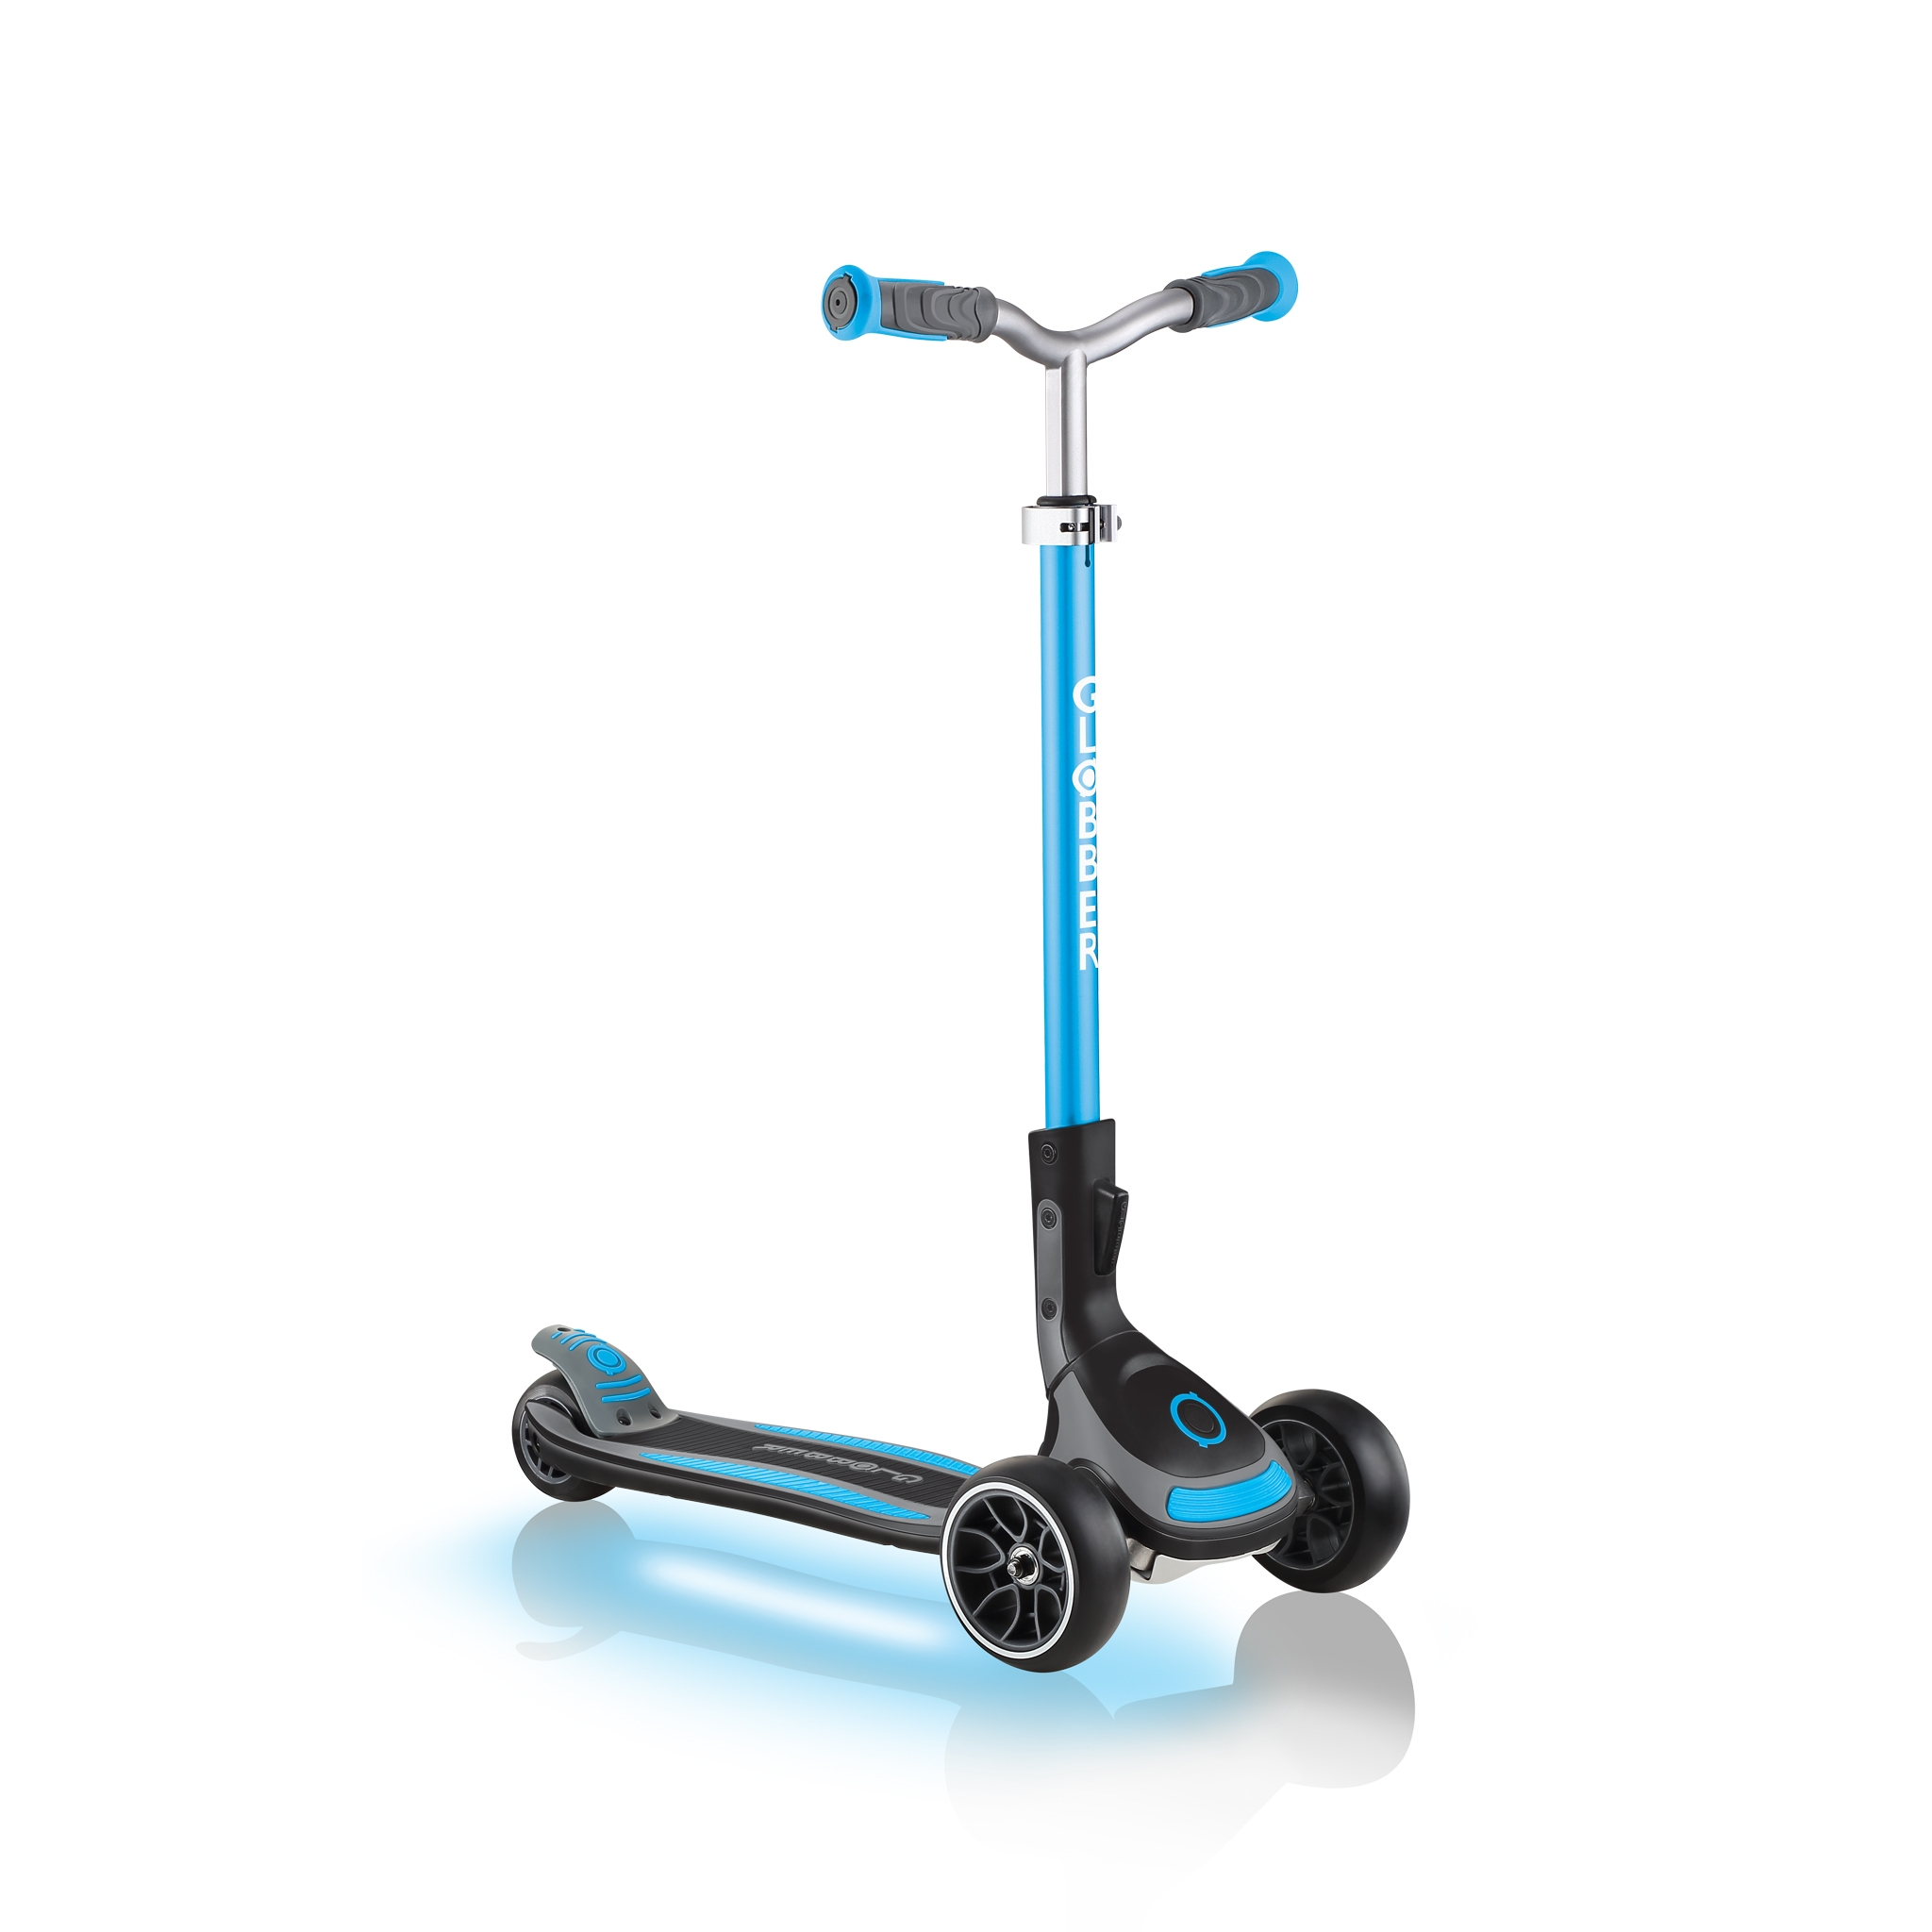 ULTIMUM-LIGHTS-3-wheel-light-up-scooter-for-kids-and-teens-sky-blue